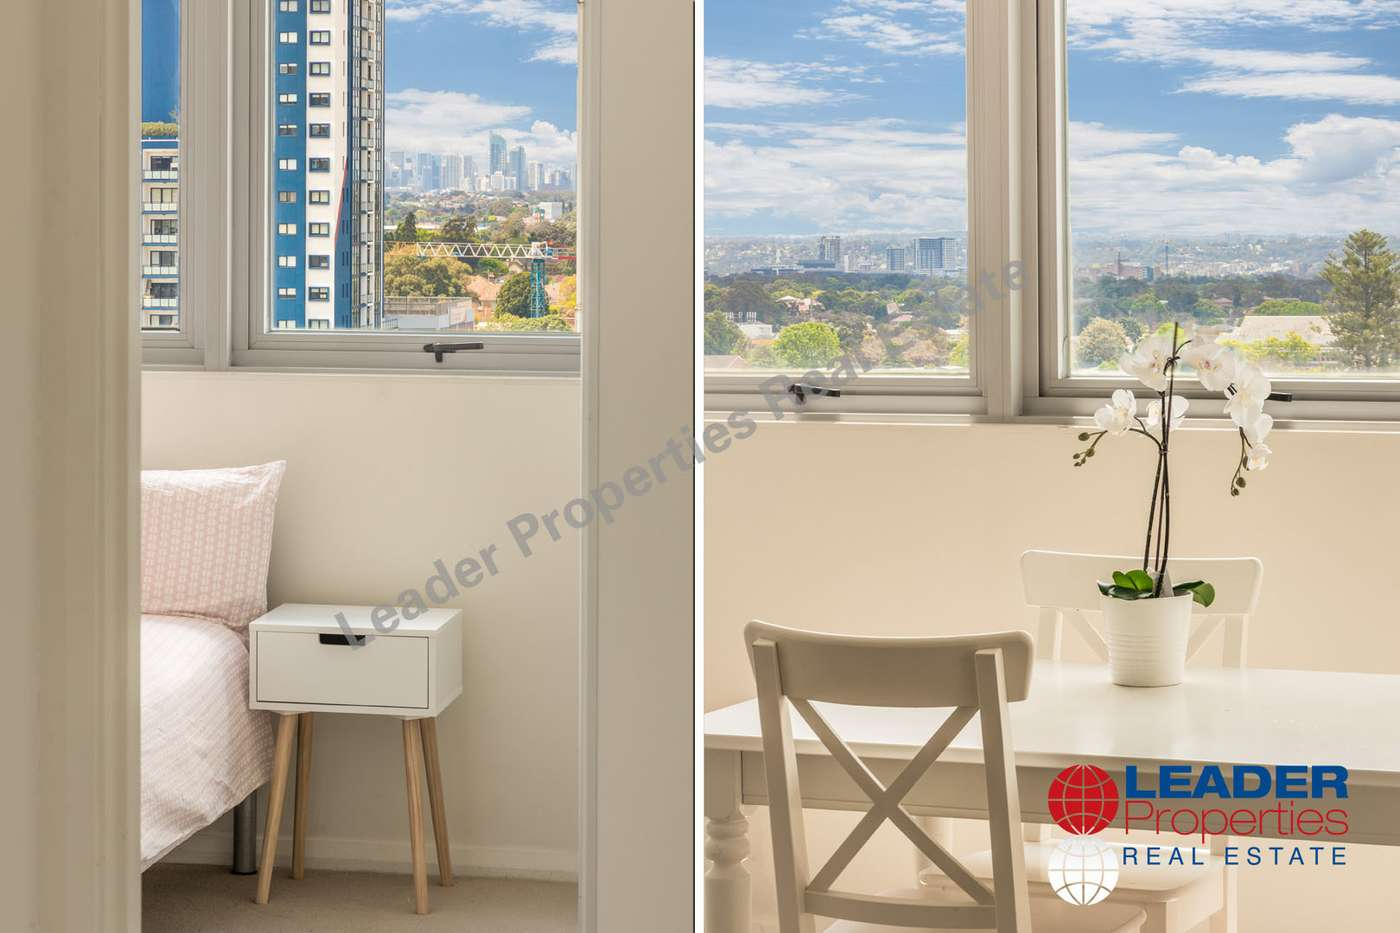 Main view of Homely apartment listing, 121/1 Railway Parade, Burwood, NSW 2134